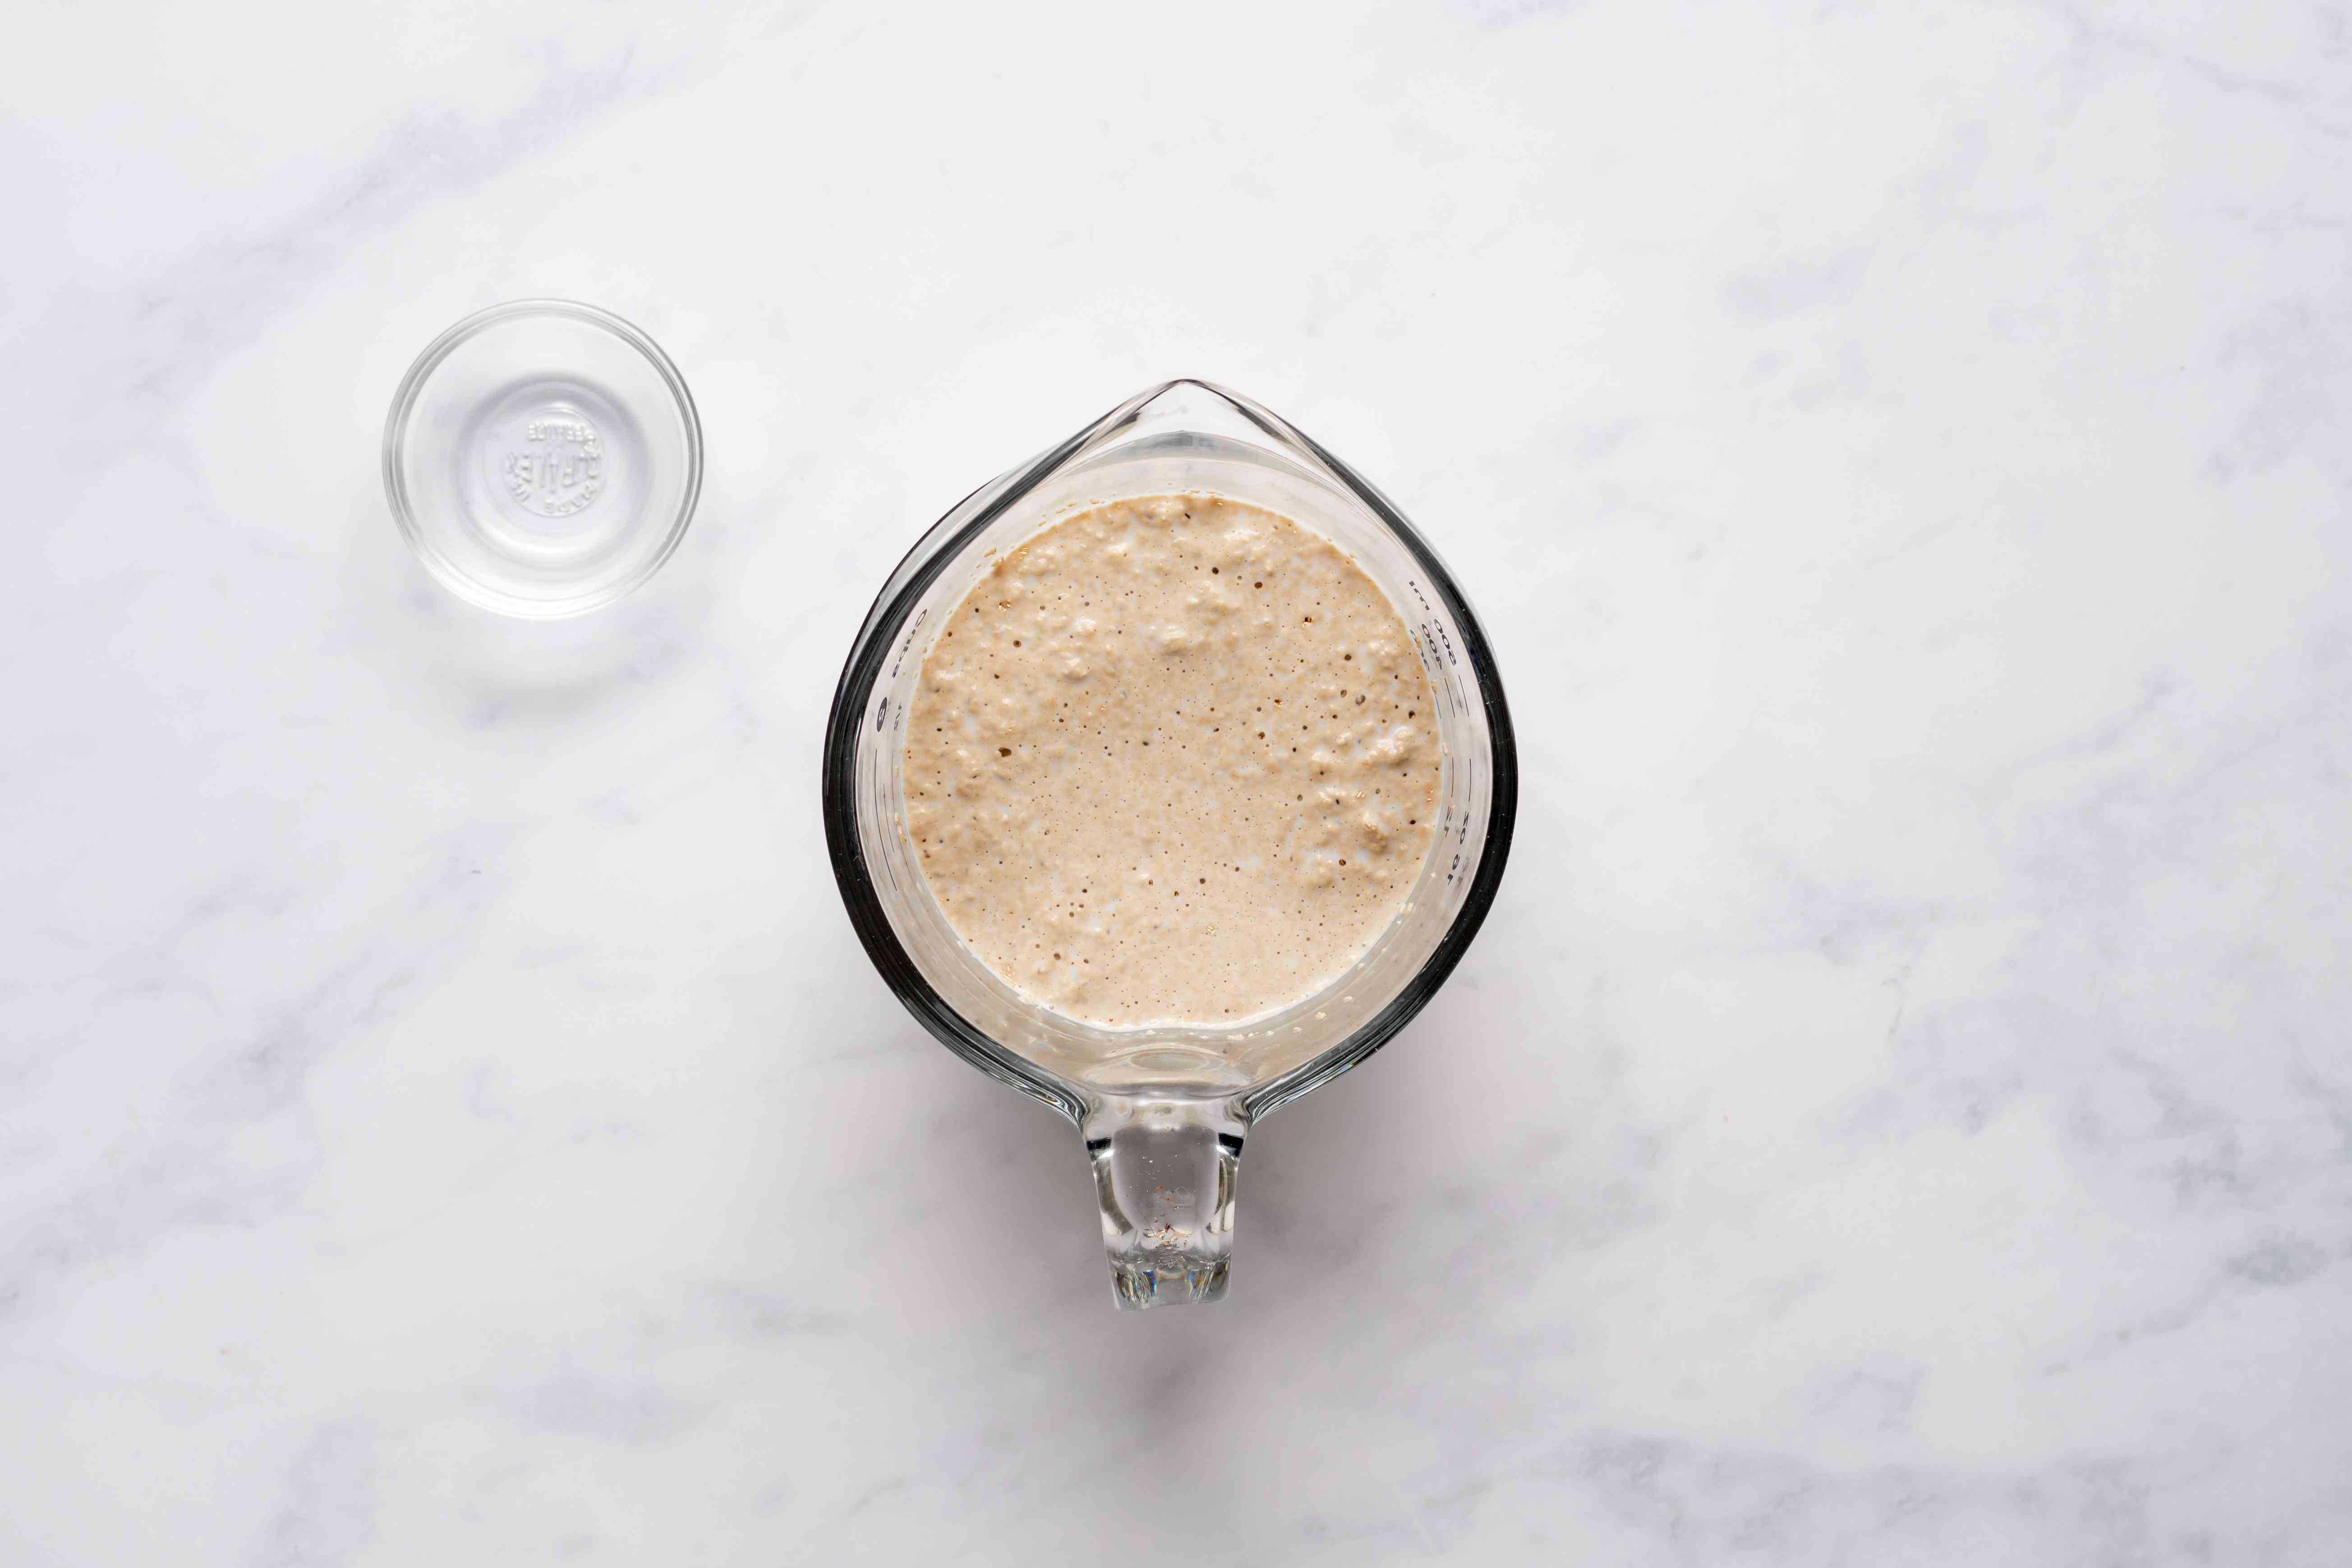 Mix the yeast with lukewarm milk in a measuring cup